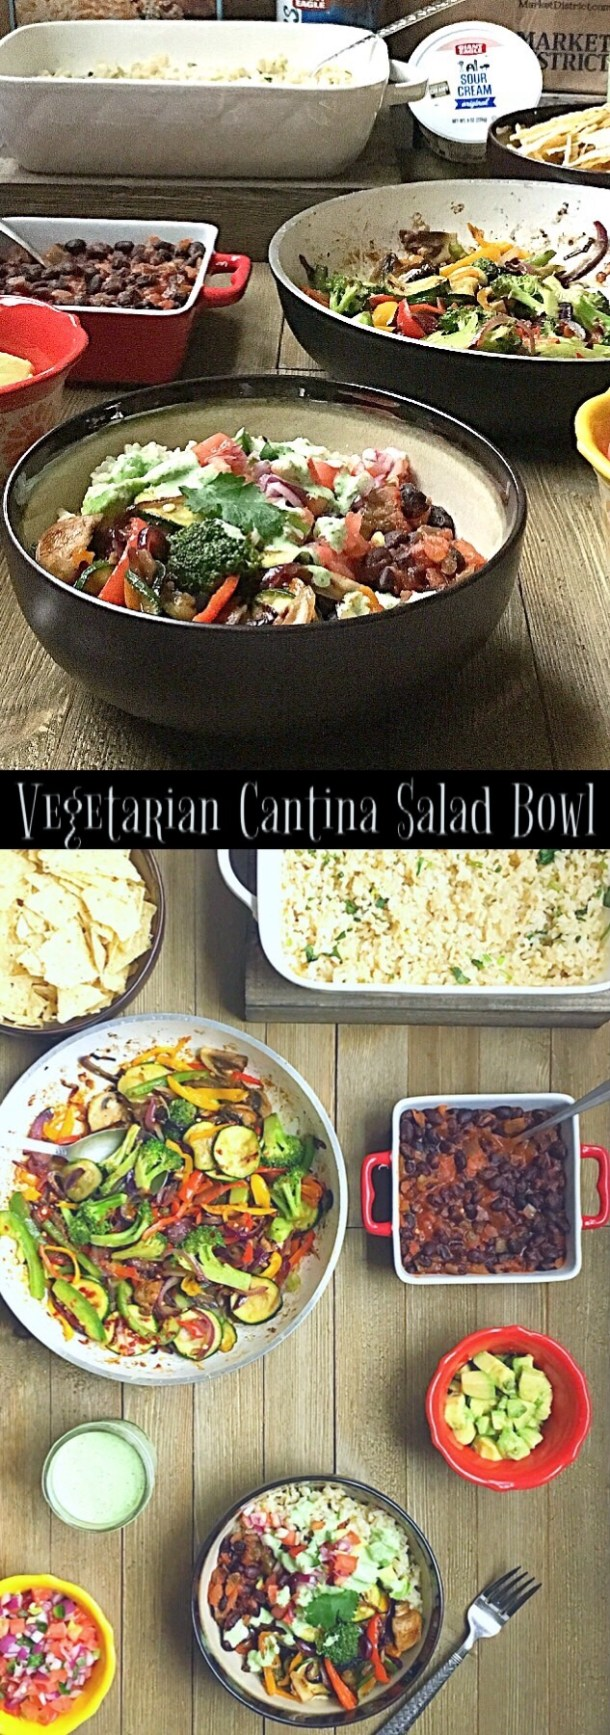 Vegetarian Cantina Salad Bowl with Giant Eagle Curbside Express Delivery #ad #GiantEagleDelivers #vegetariansalad #texmex #cantinasalad #easyrecipes